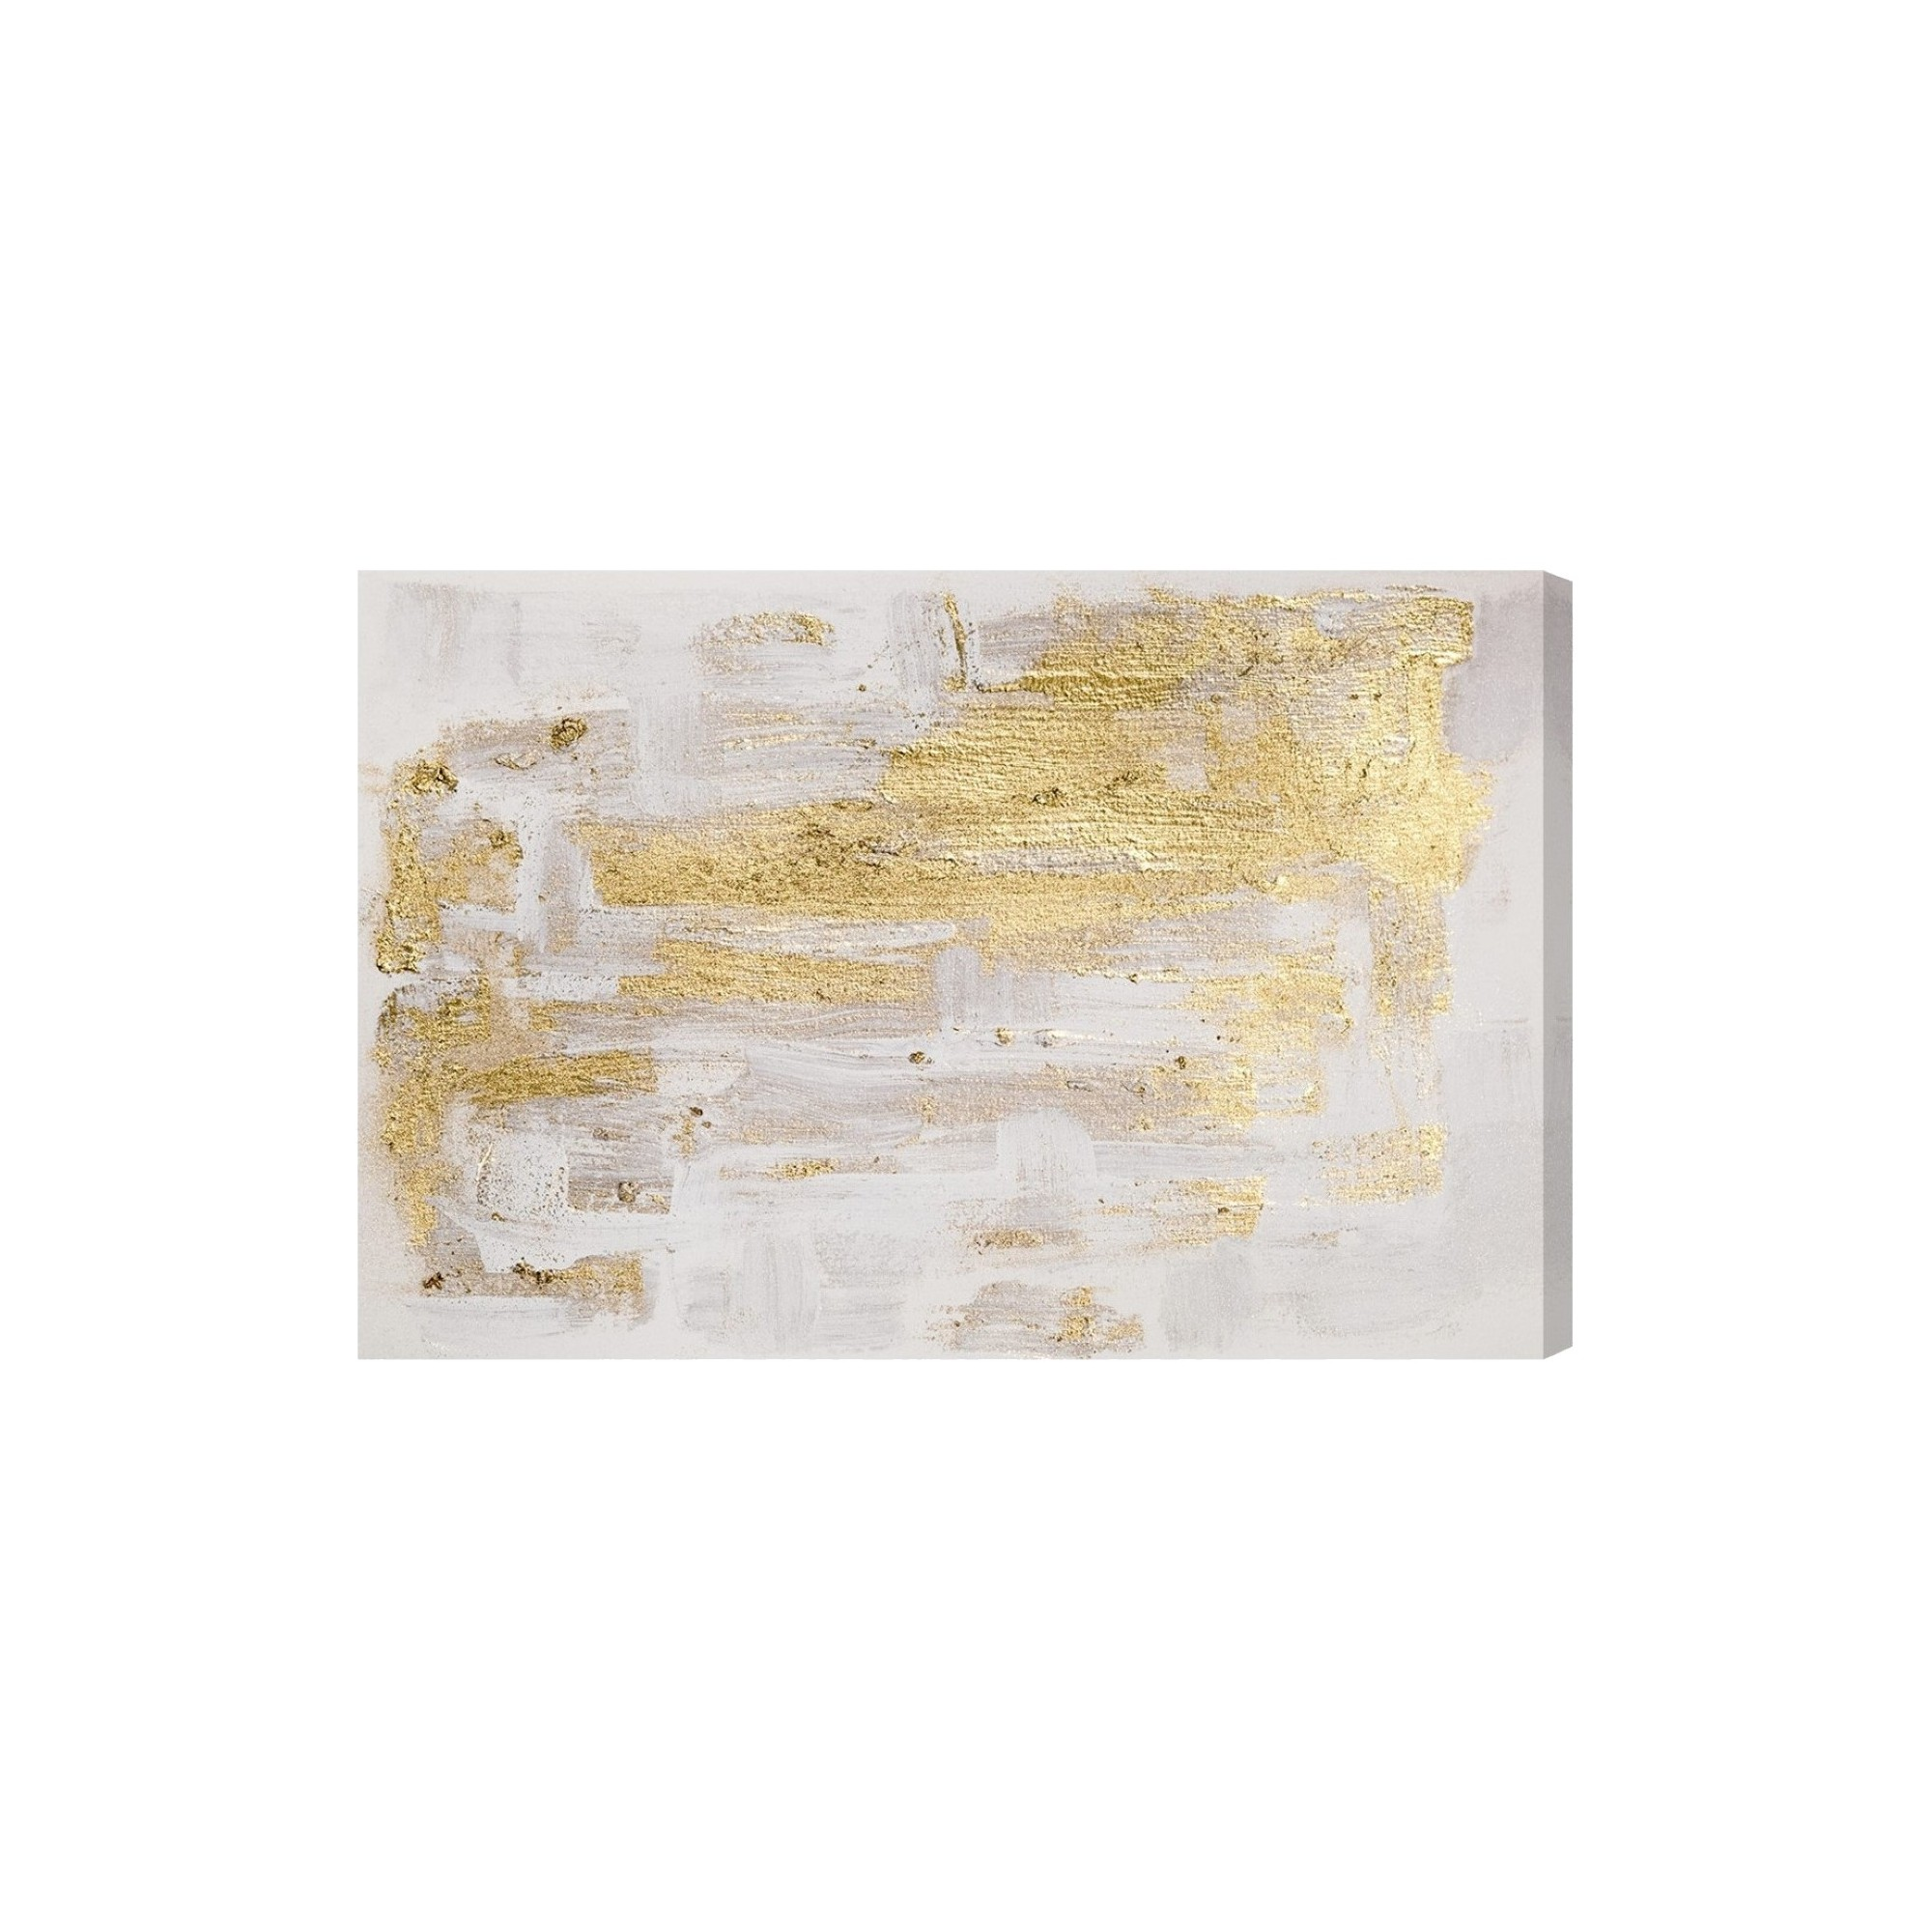 Oliver Gal Unframed Wall Pure Love Canvas Art (24X36), Gold